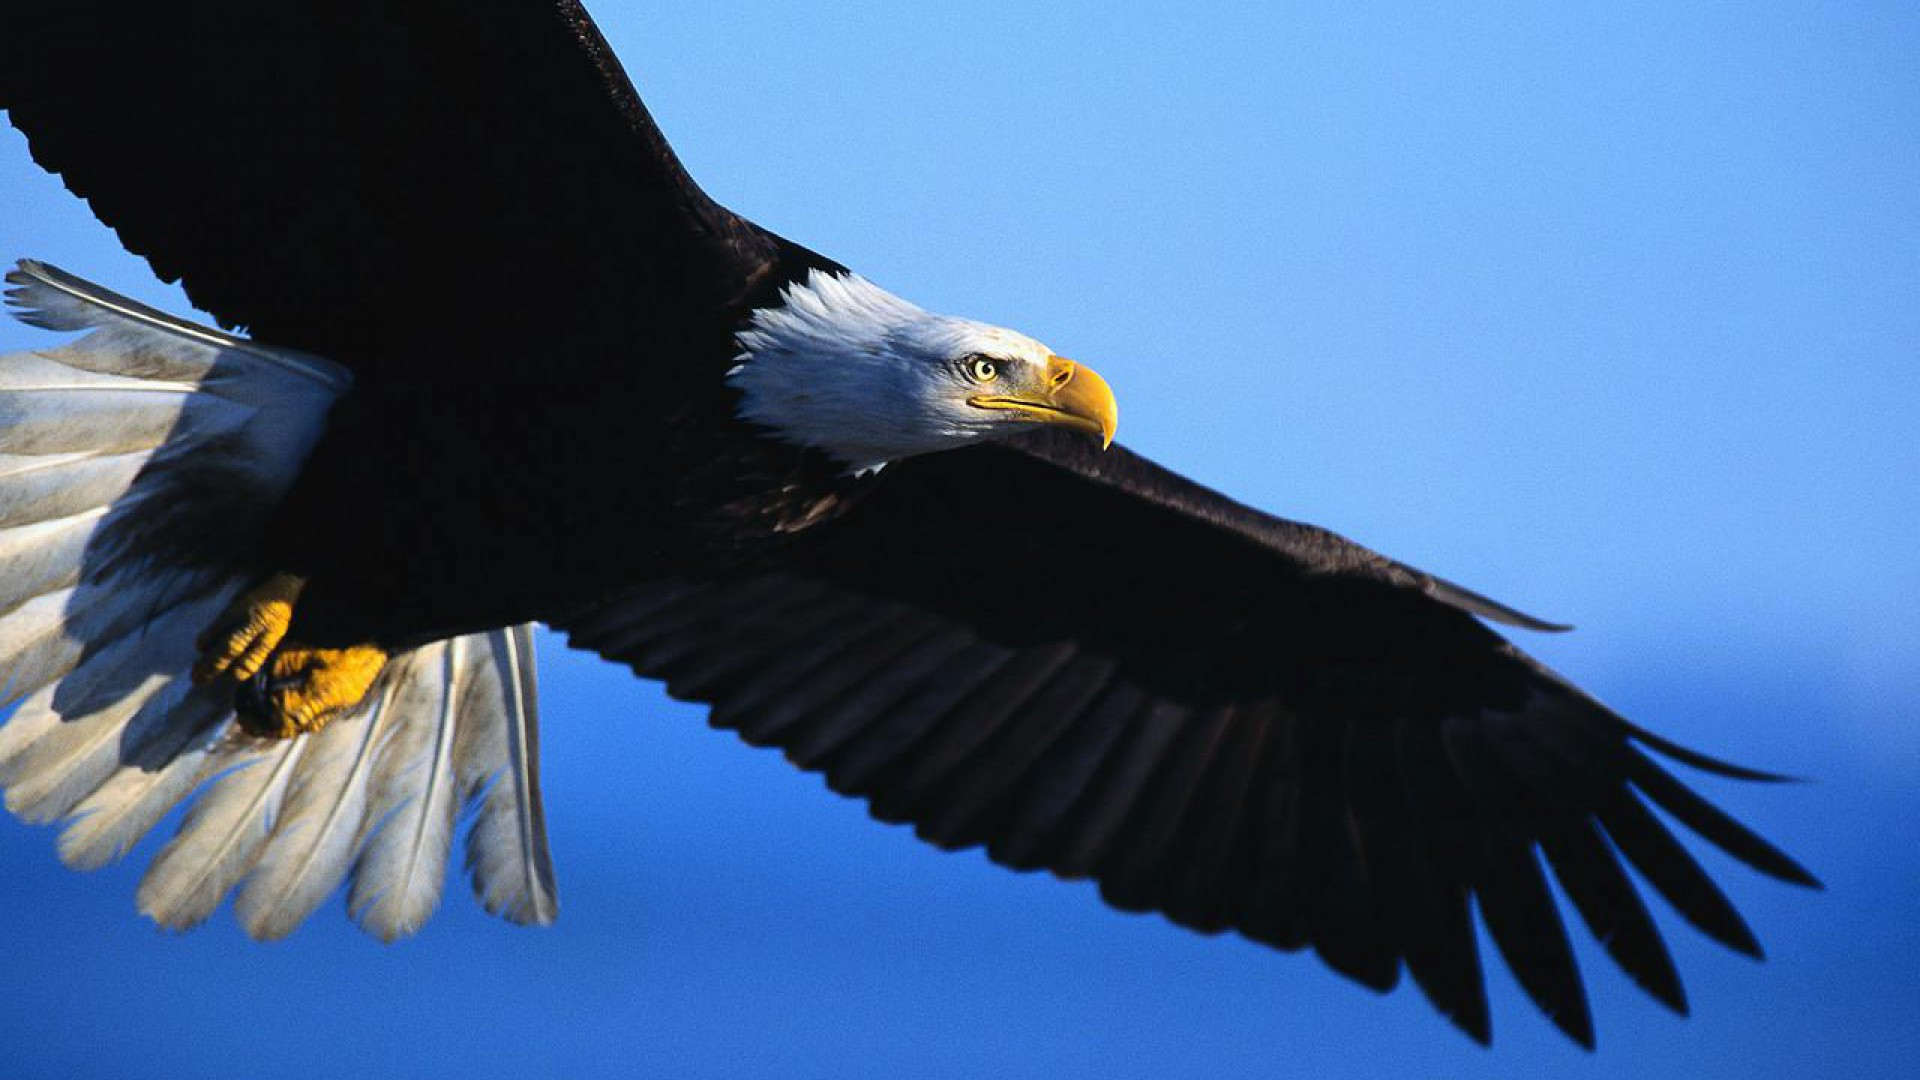 Hd Quality Creative Eagle Pictures